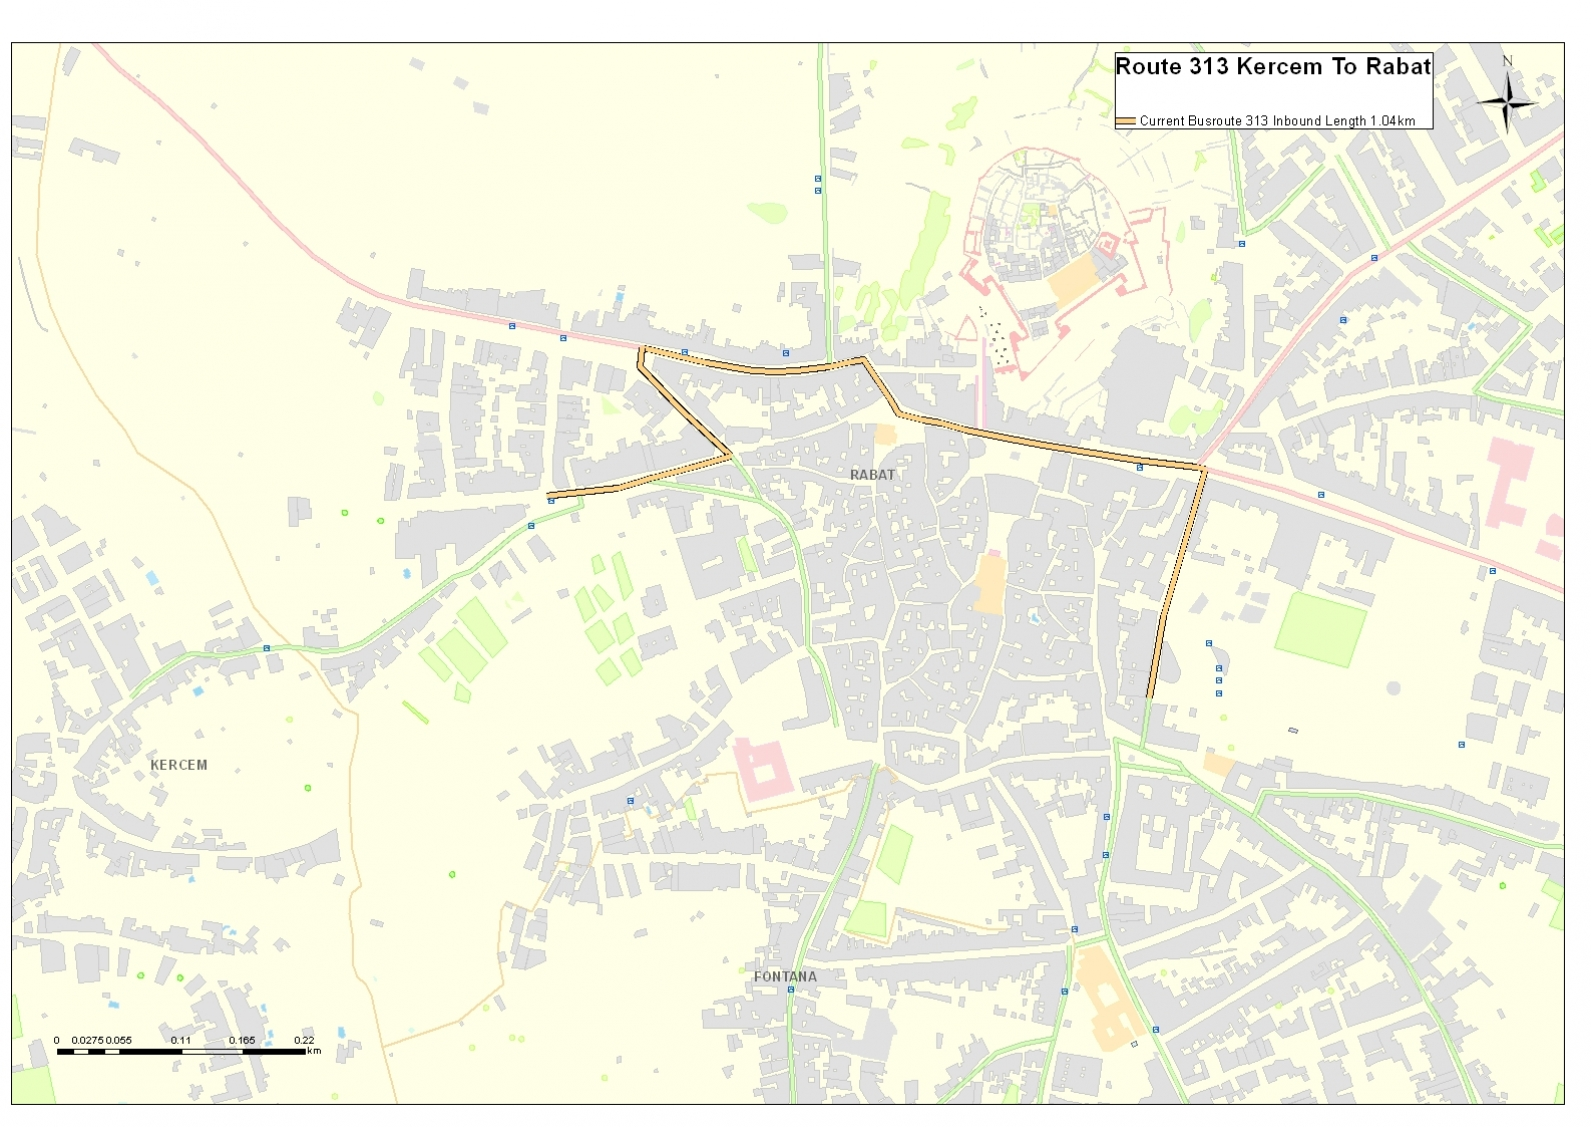 Land-current-network-routes-and-schedules-Gozo-25